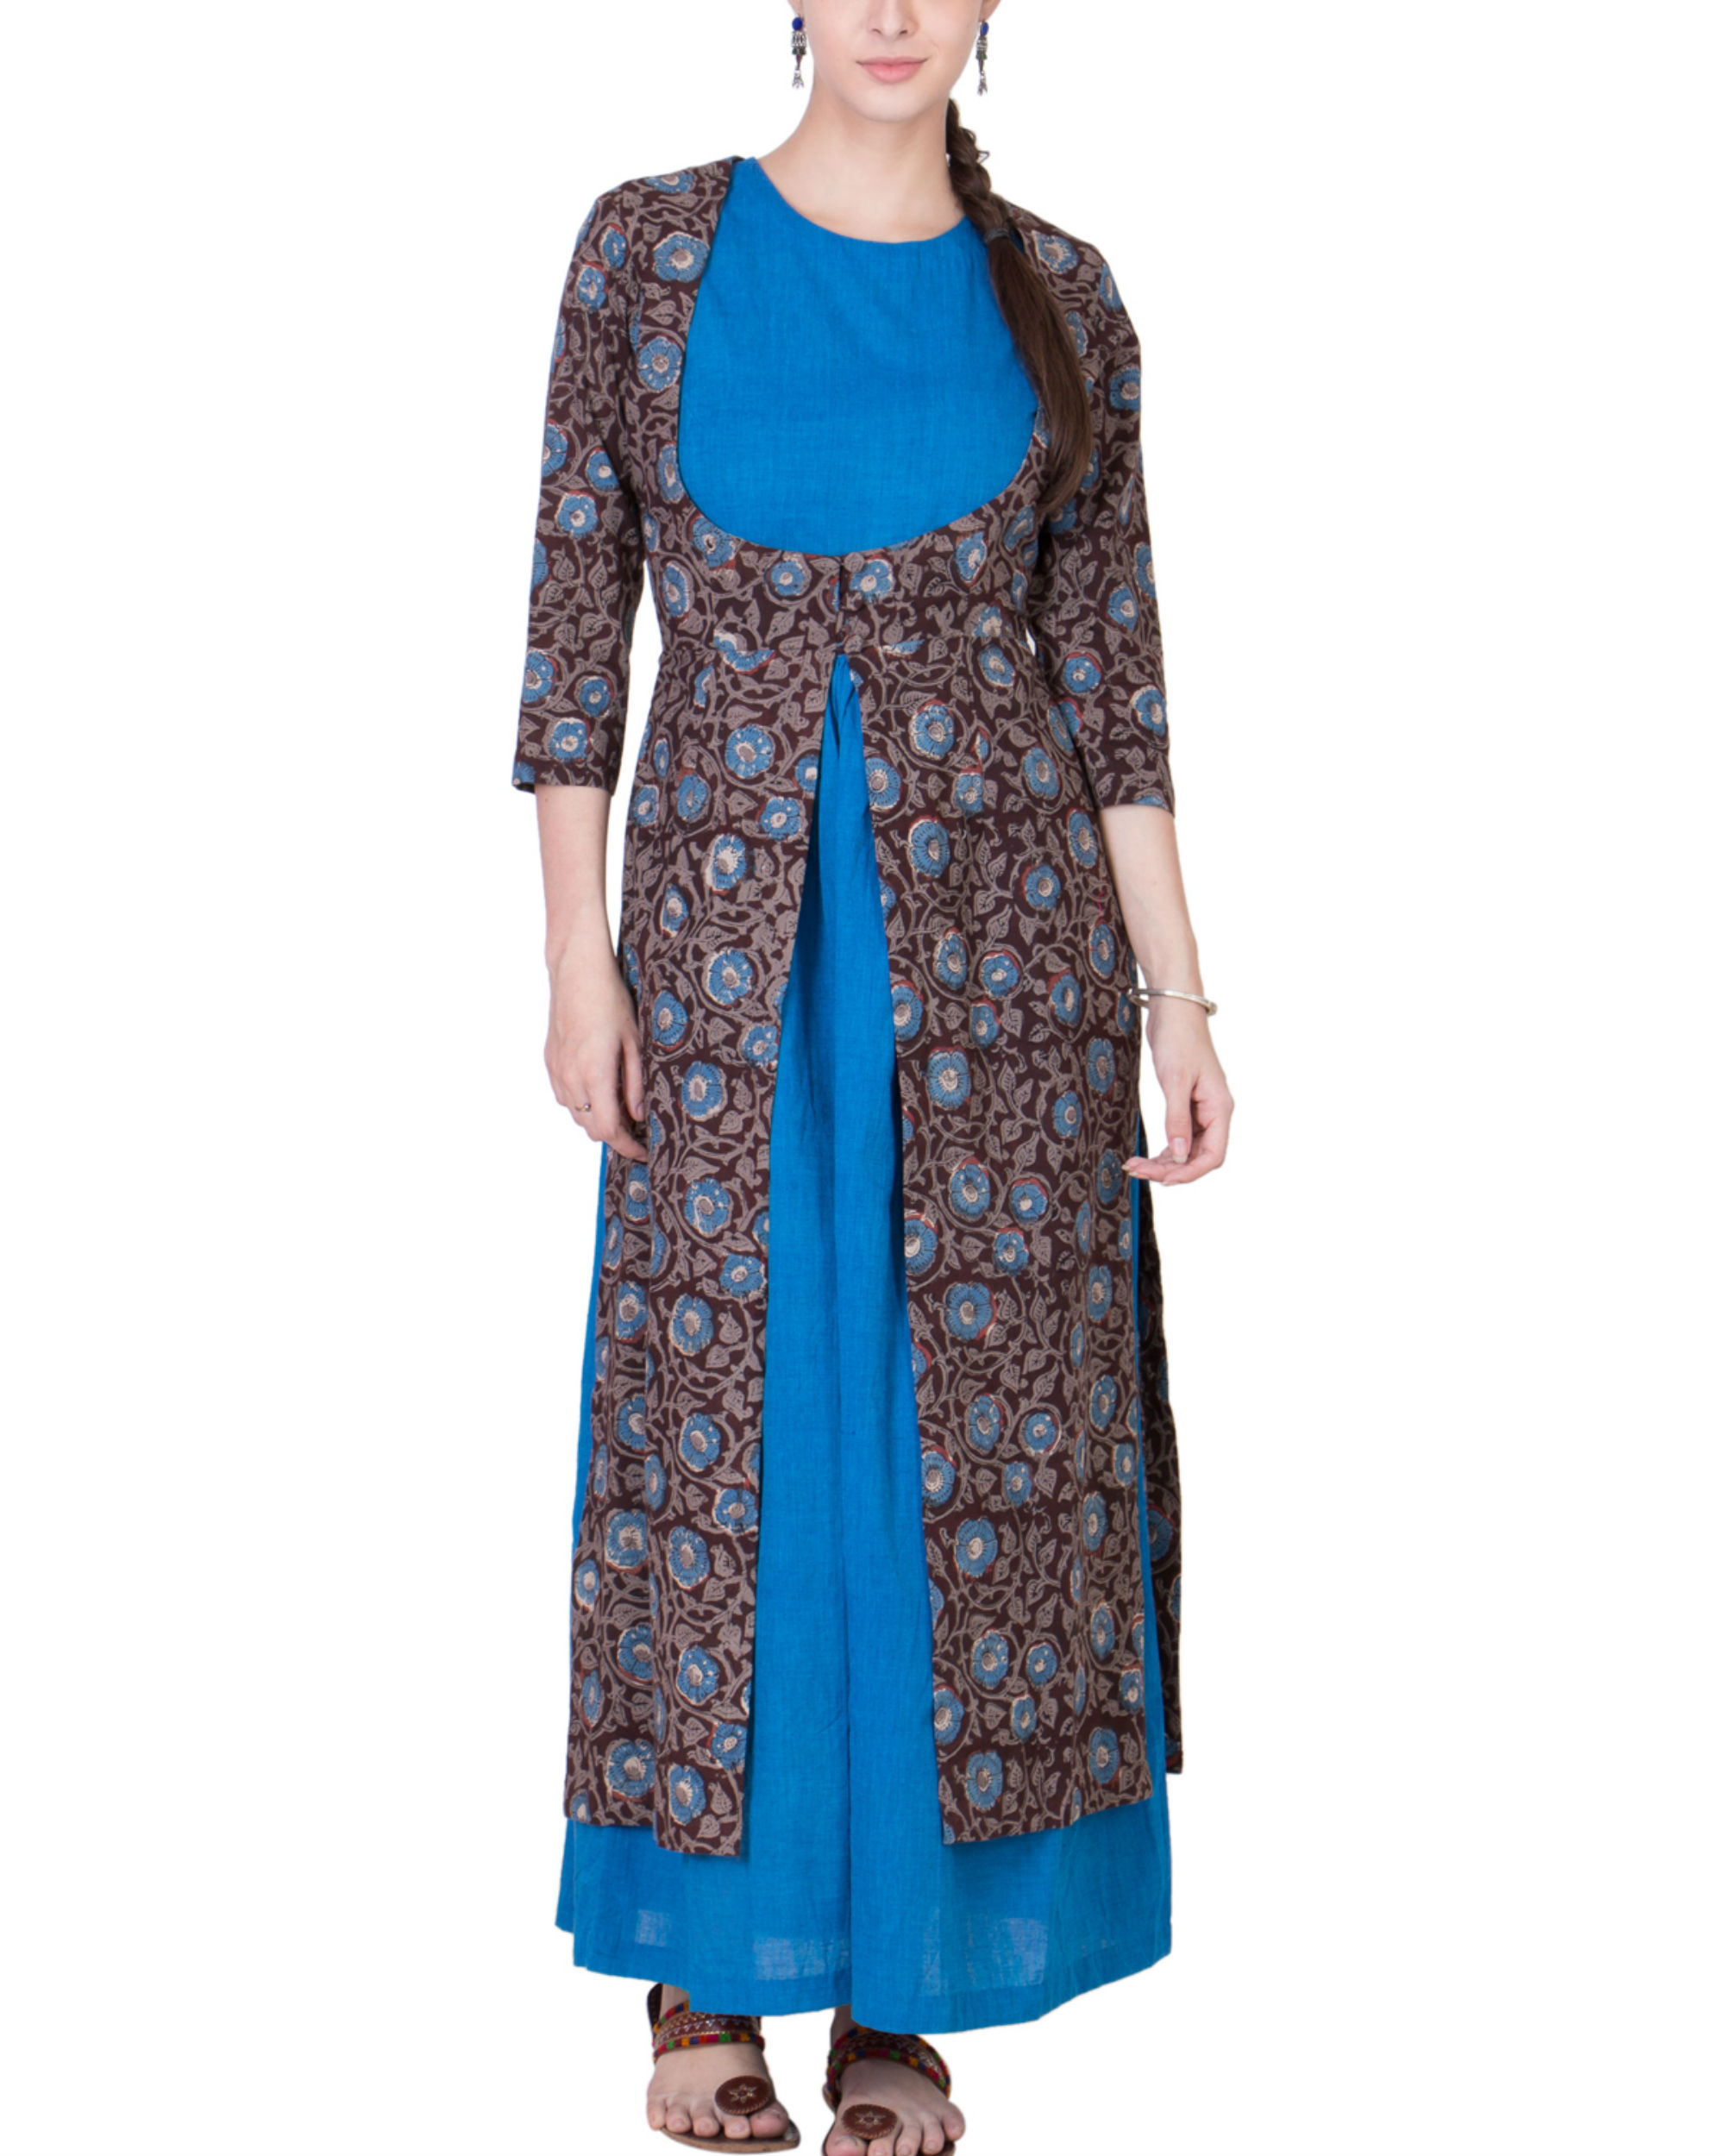 Set of blue dress with brown jacket